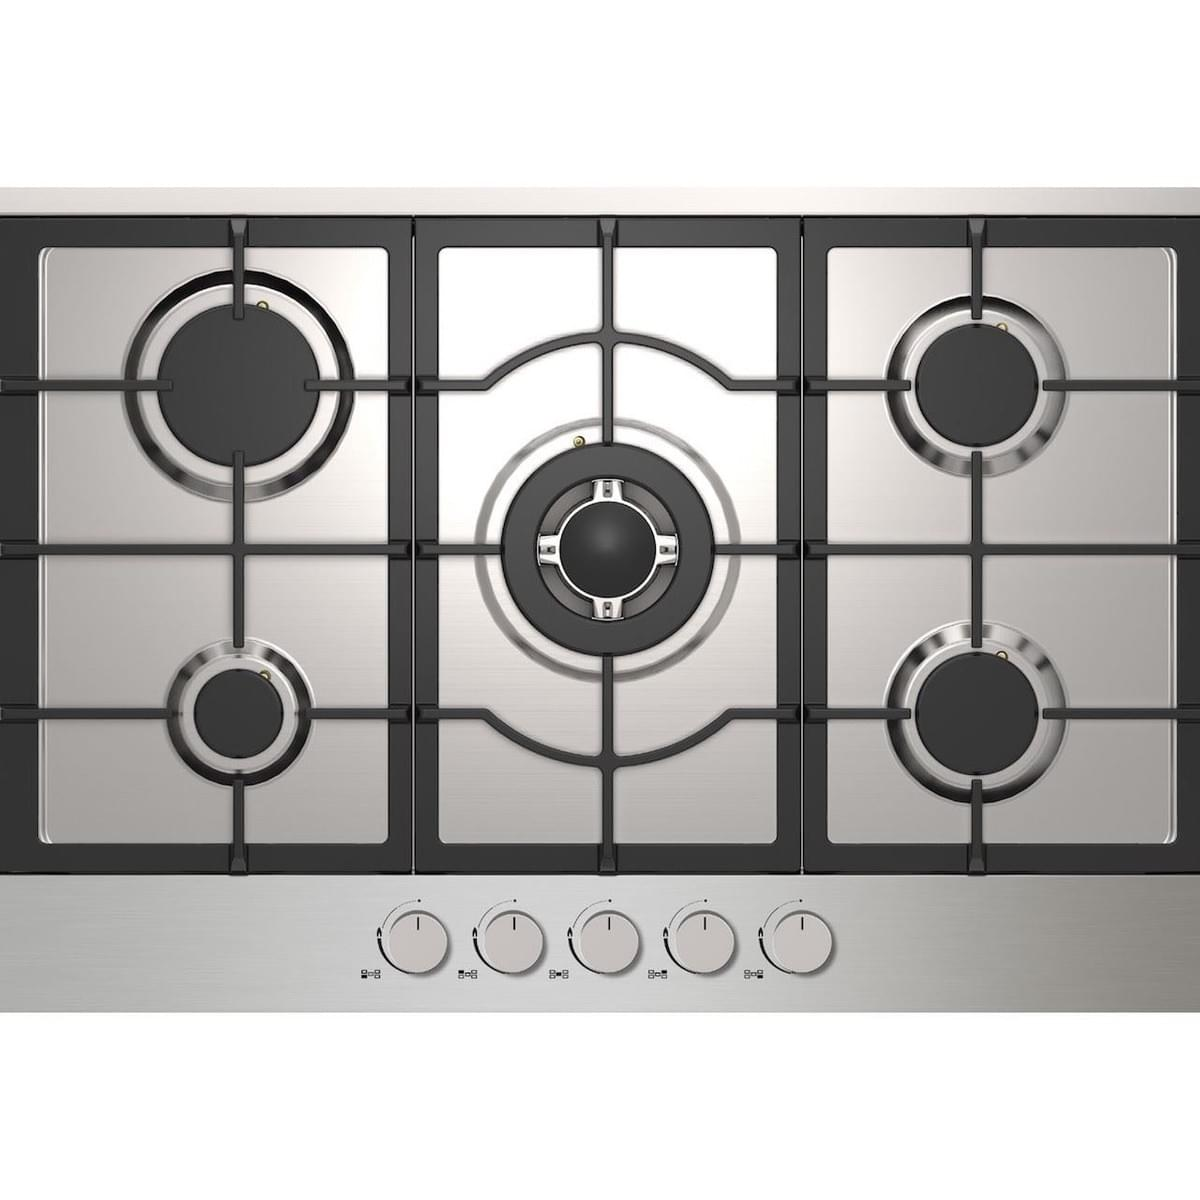 Statesman gas hobs in stock at M&G Energy